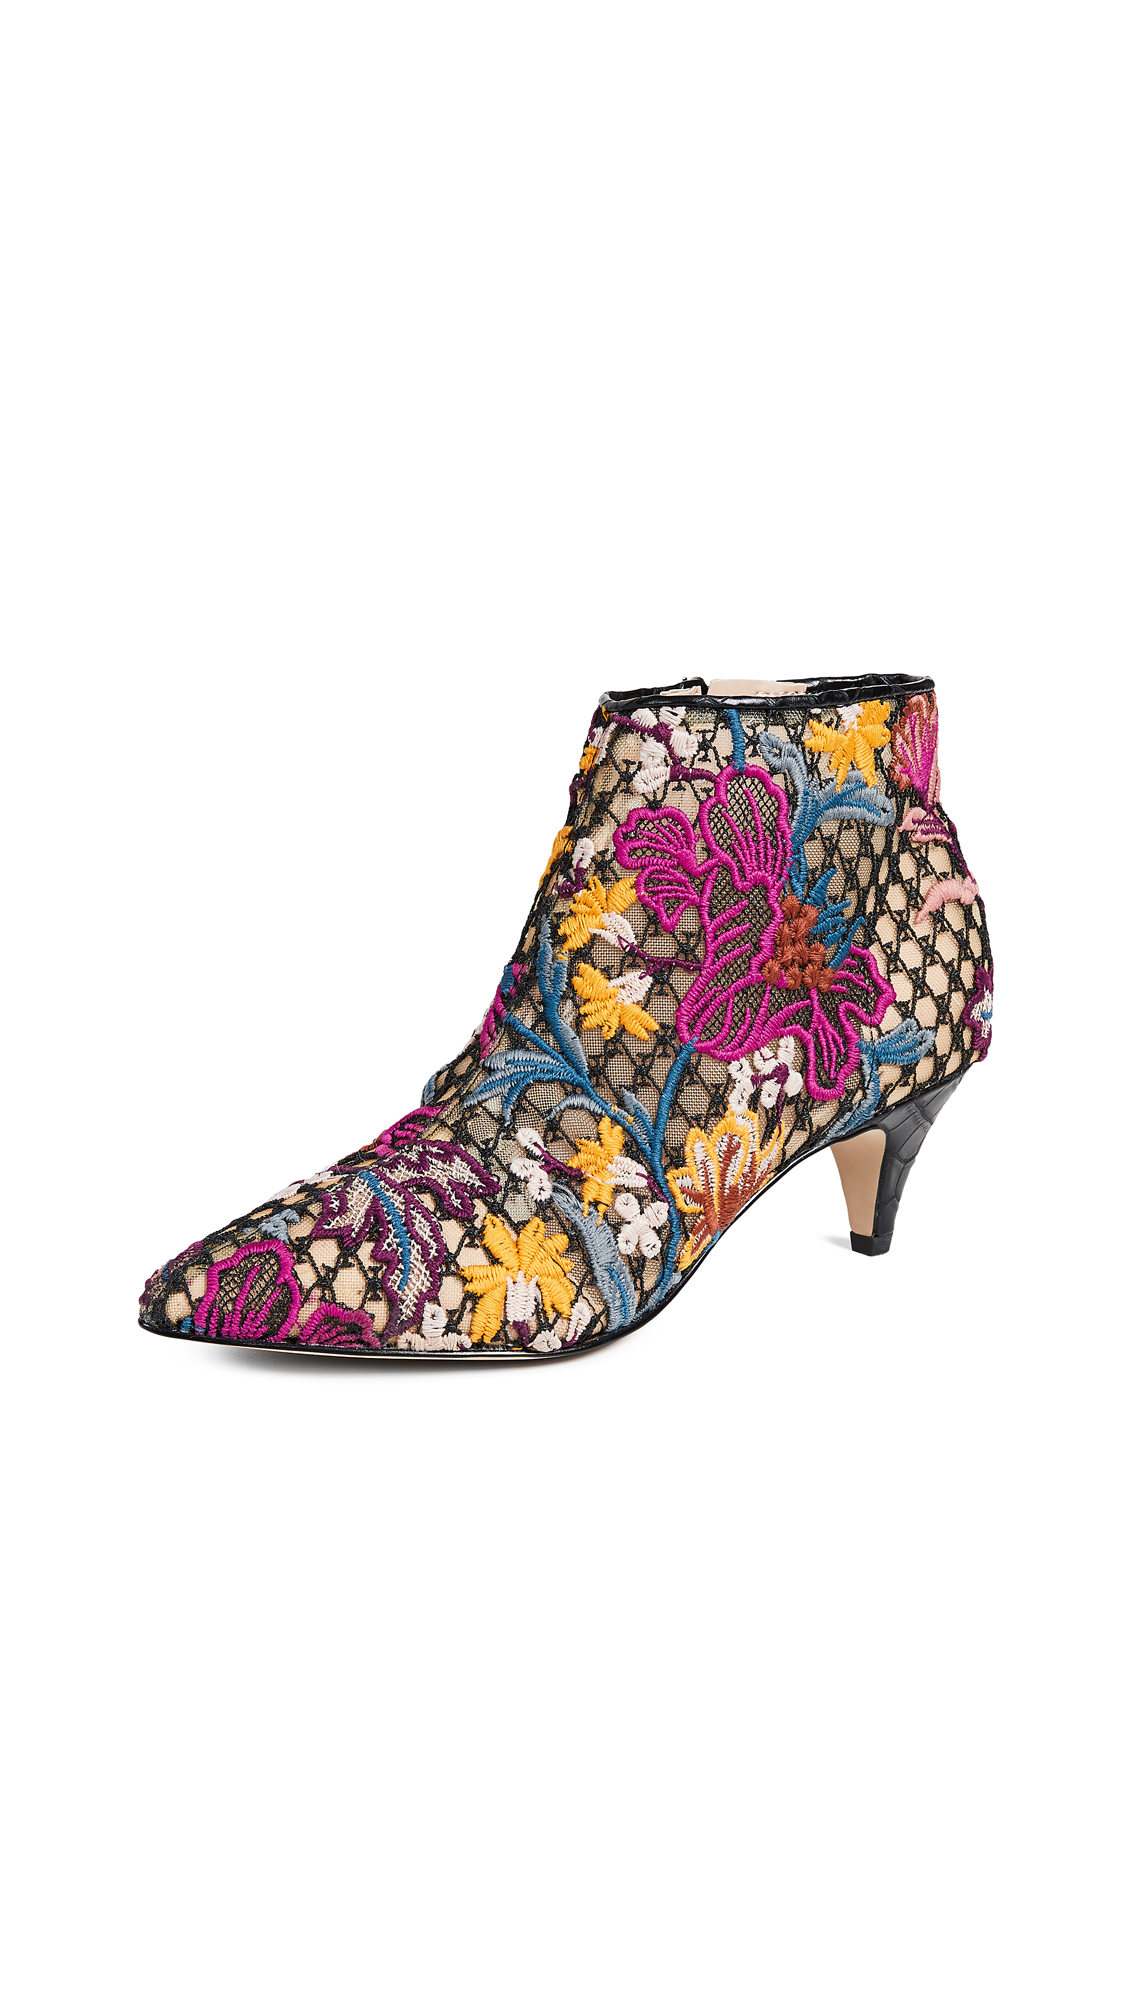 Sam Edelman Kinzey Booties - Bright Multi